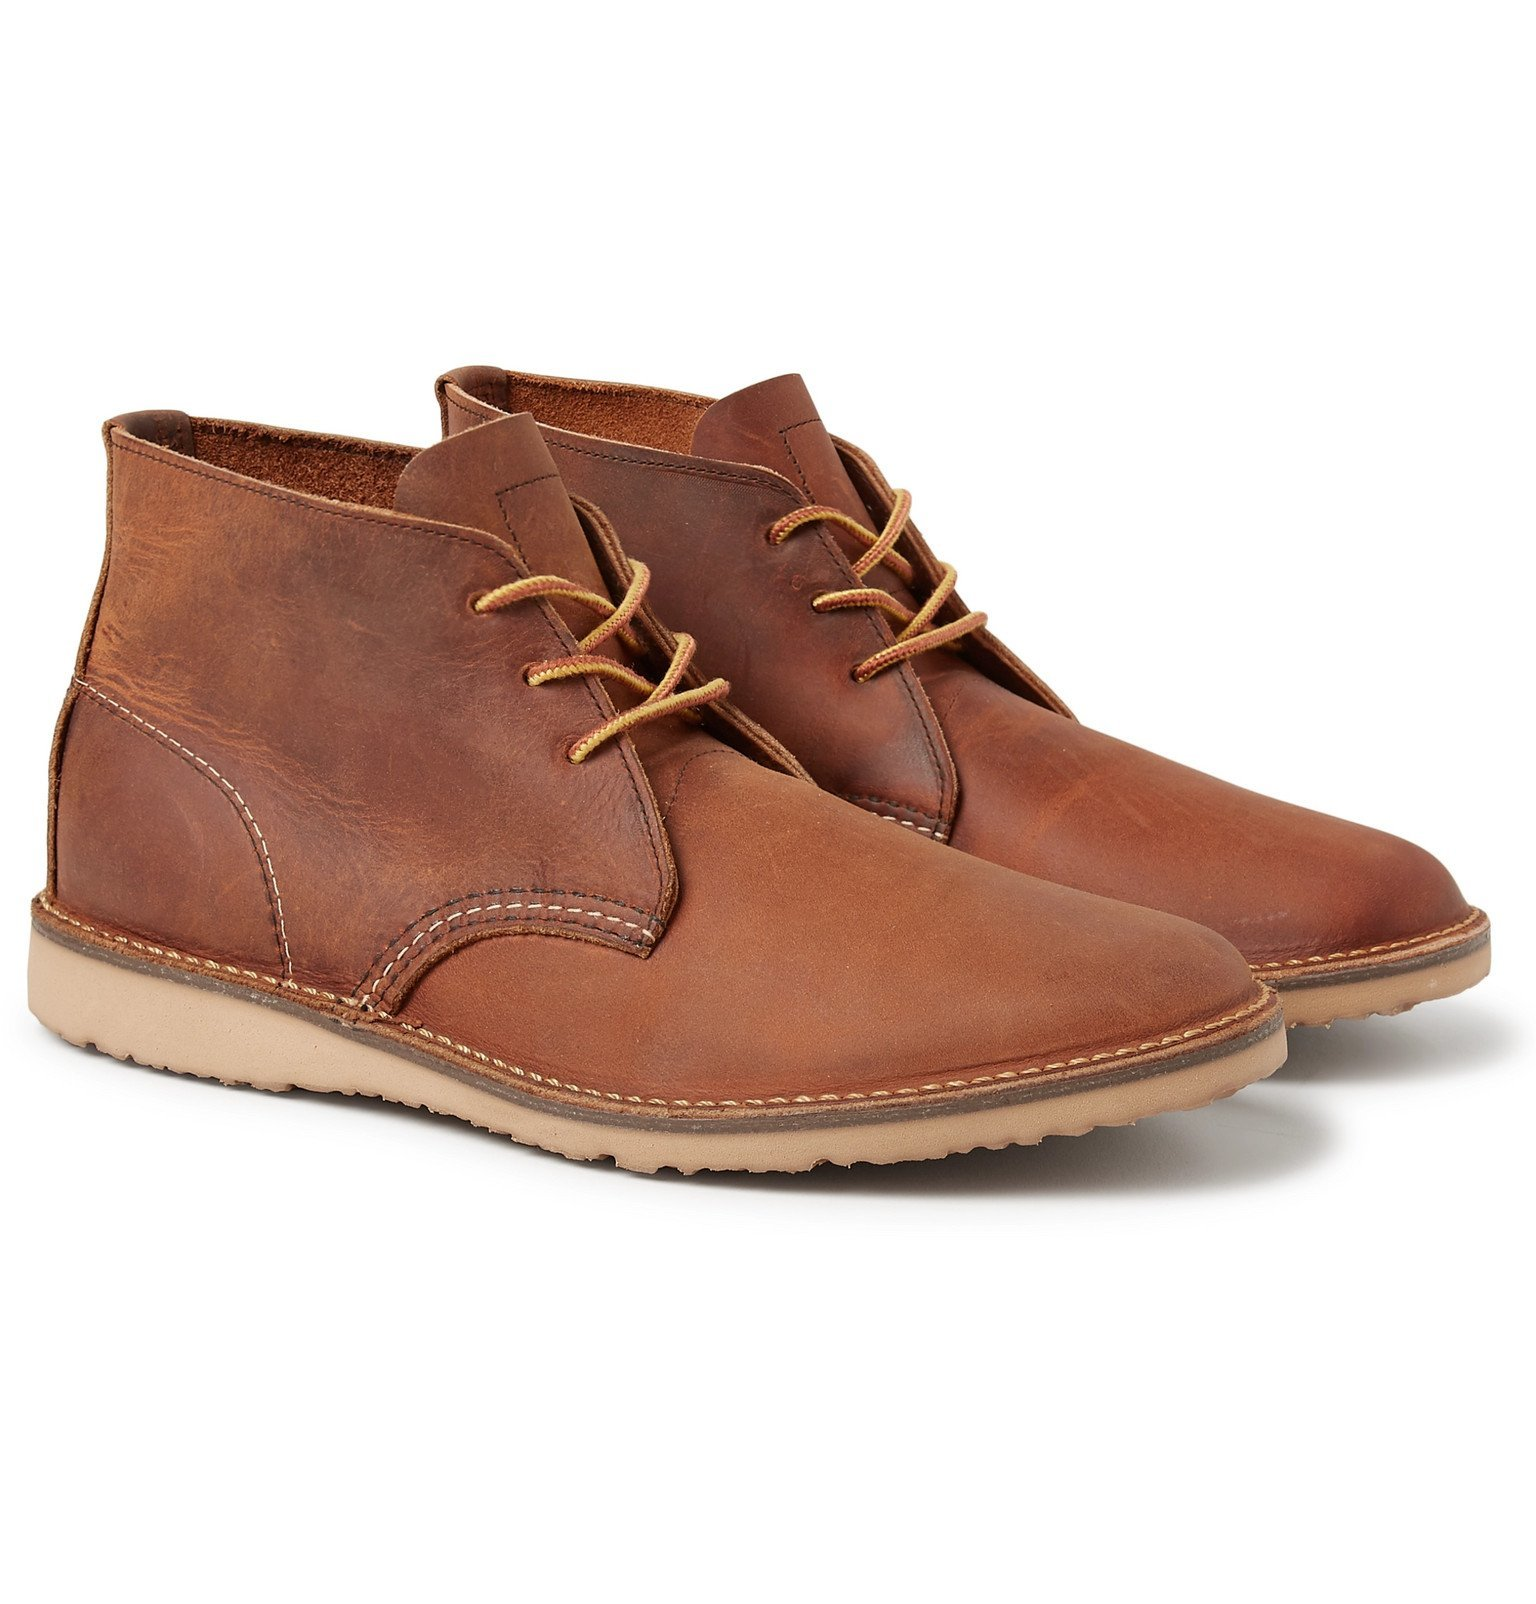 Photo: Red Wing Shoes - Weekender Burnished Leather Chukka Boots - Brown